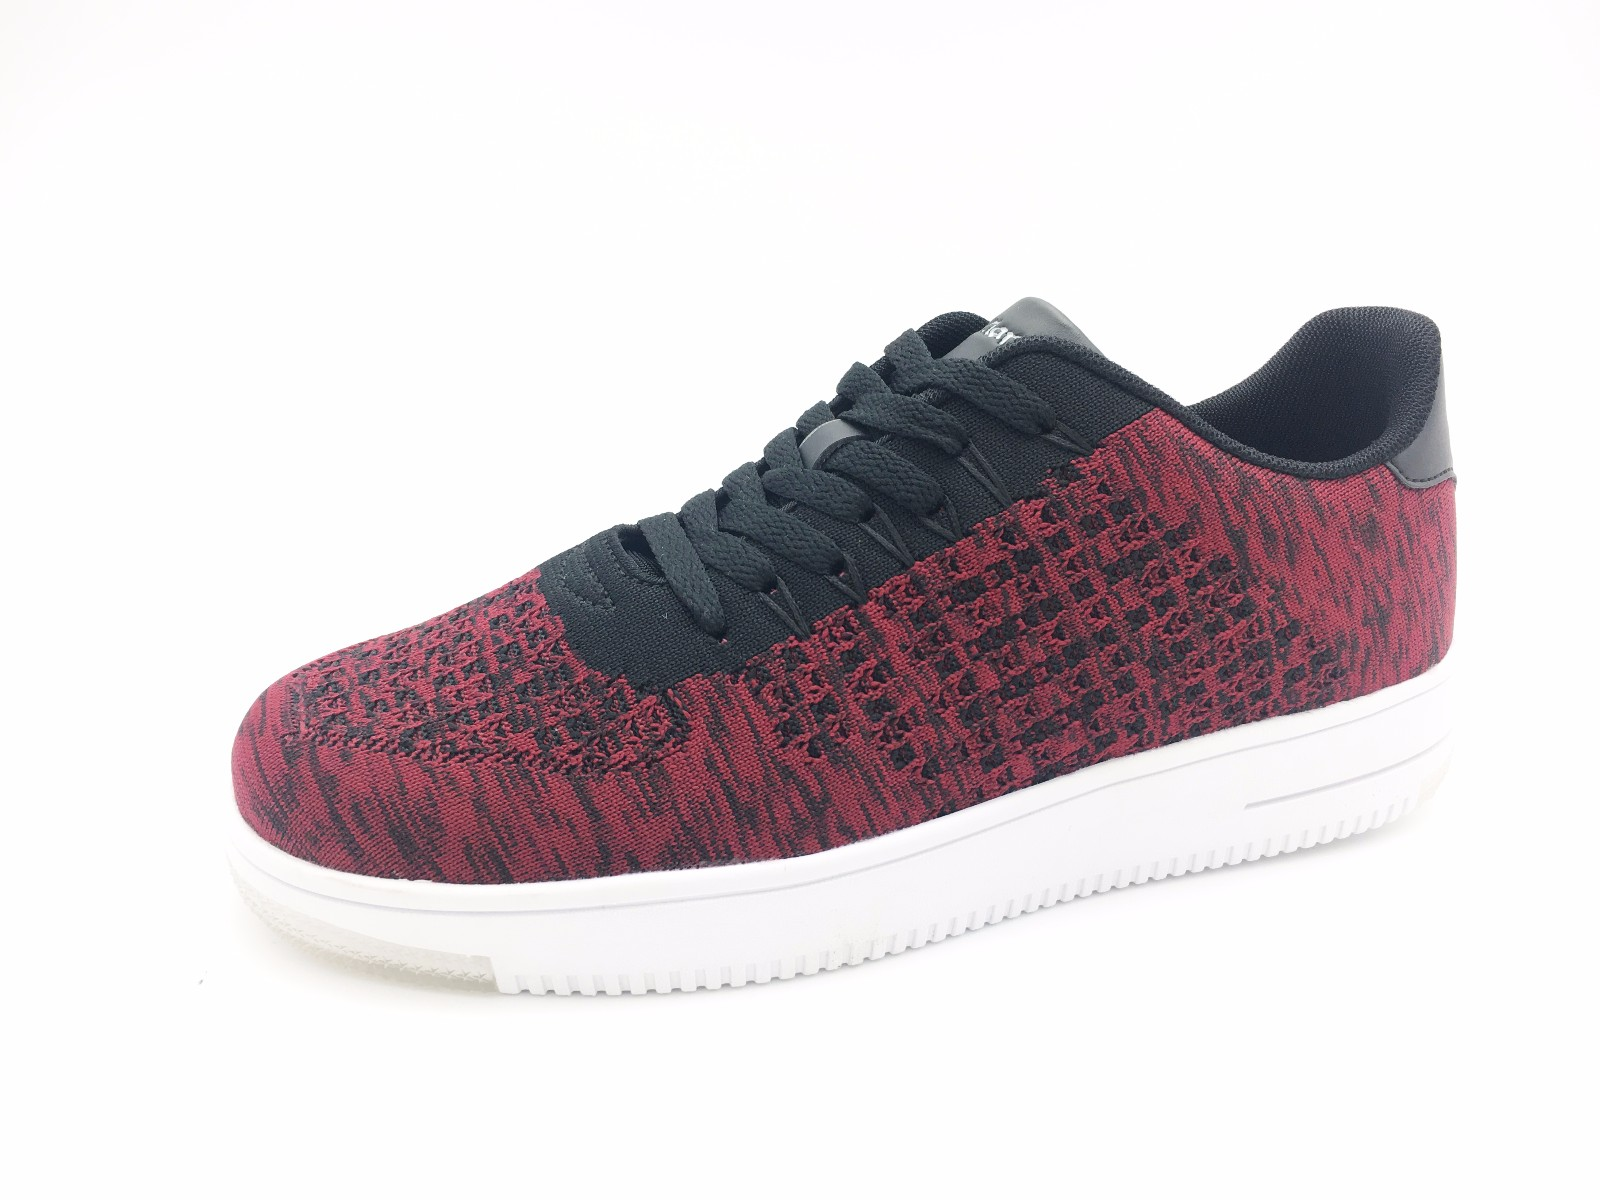 High quality Casual Flyknit Shoes For Men Quotes,China Casual Flyknit Shoes For Men Factory,Casual Flyknit Shoes For Men Purchasing